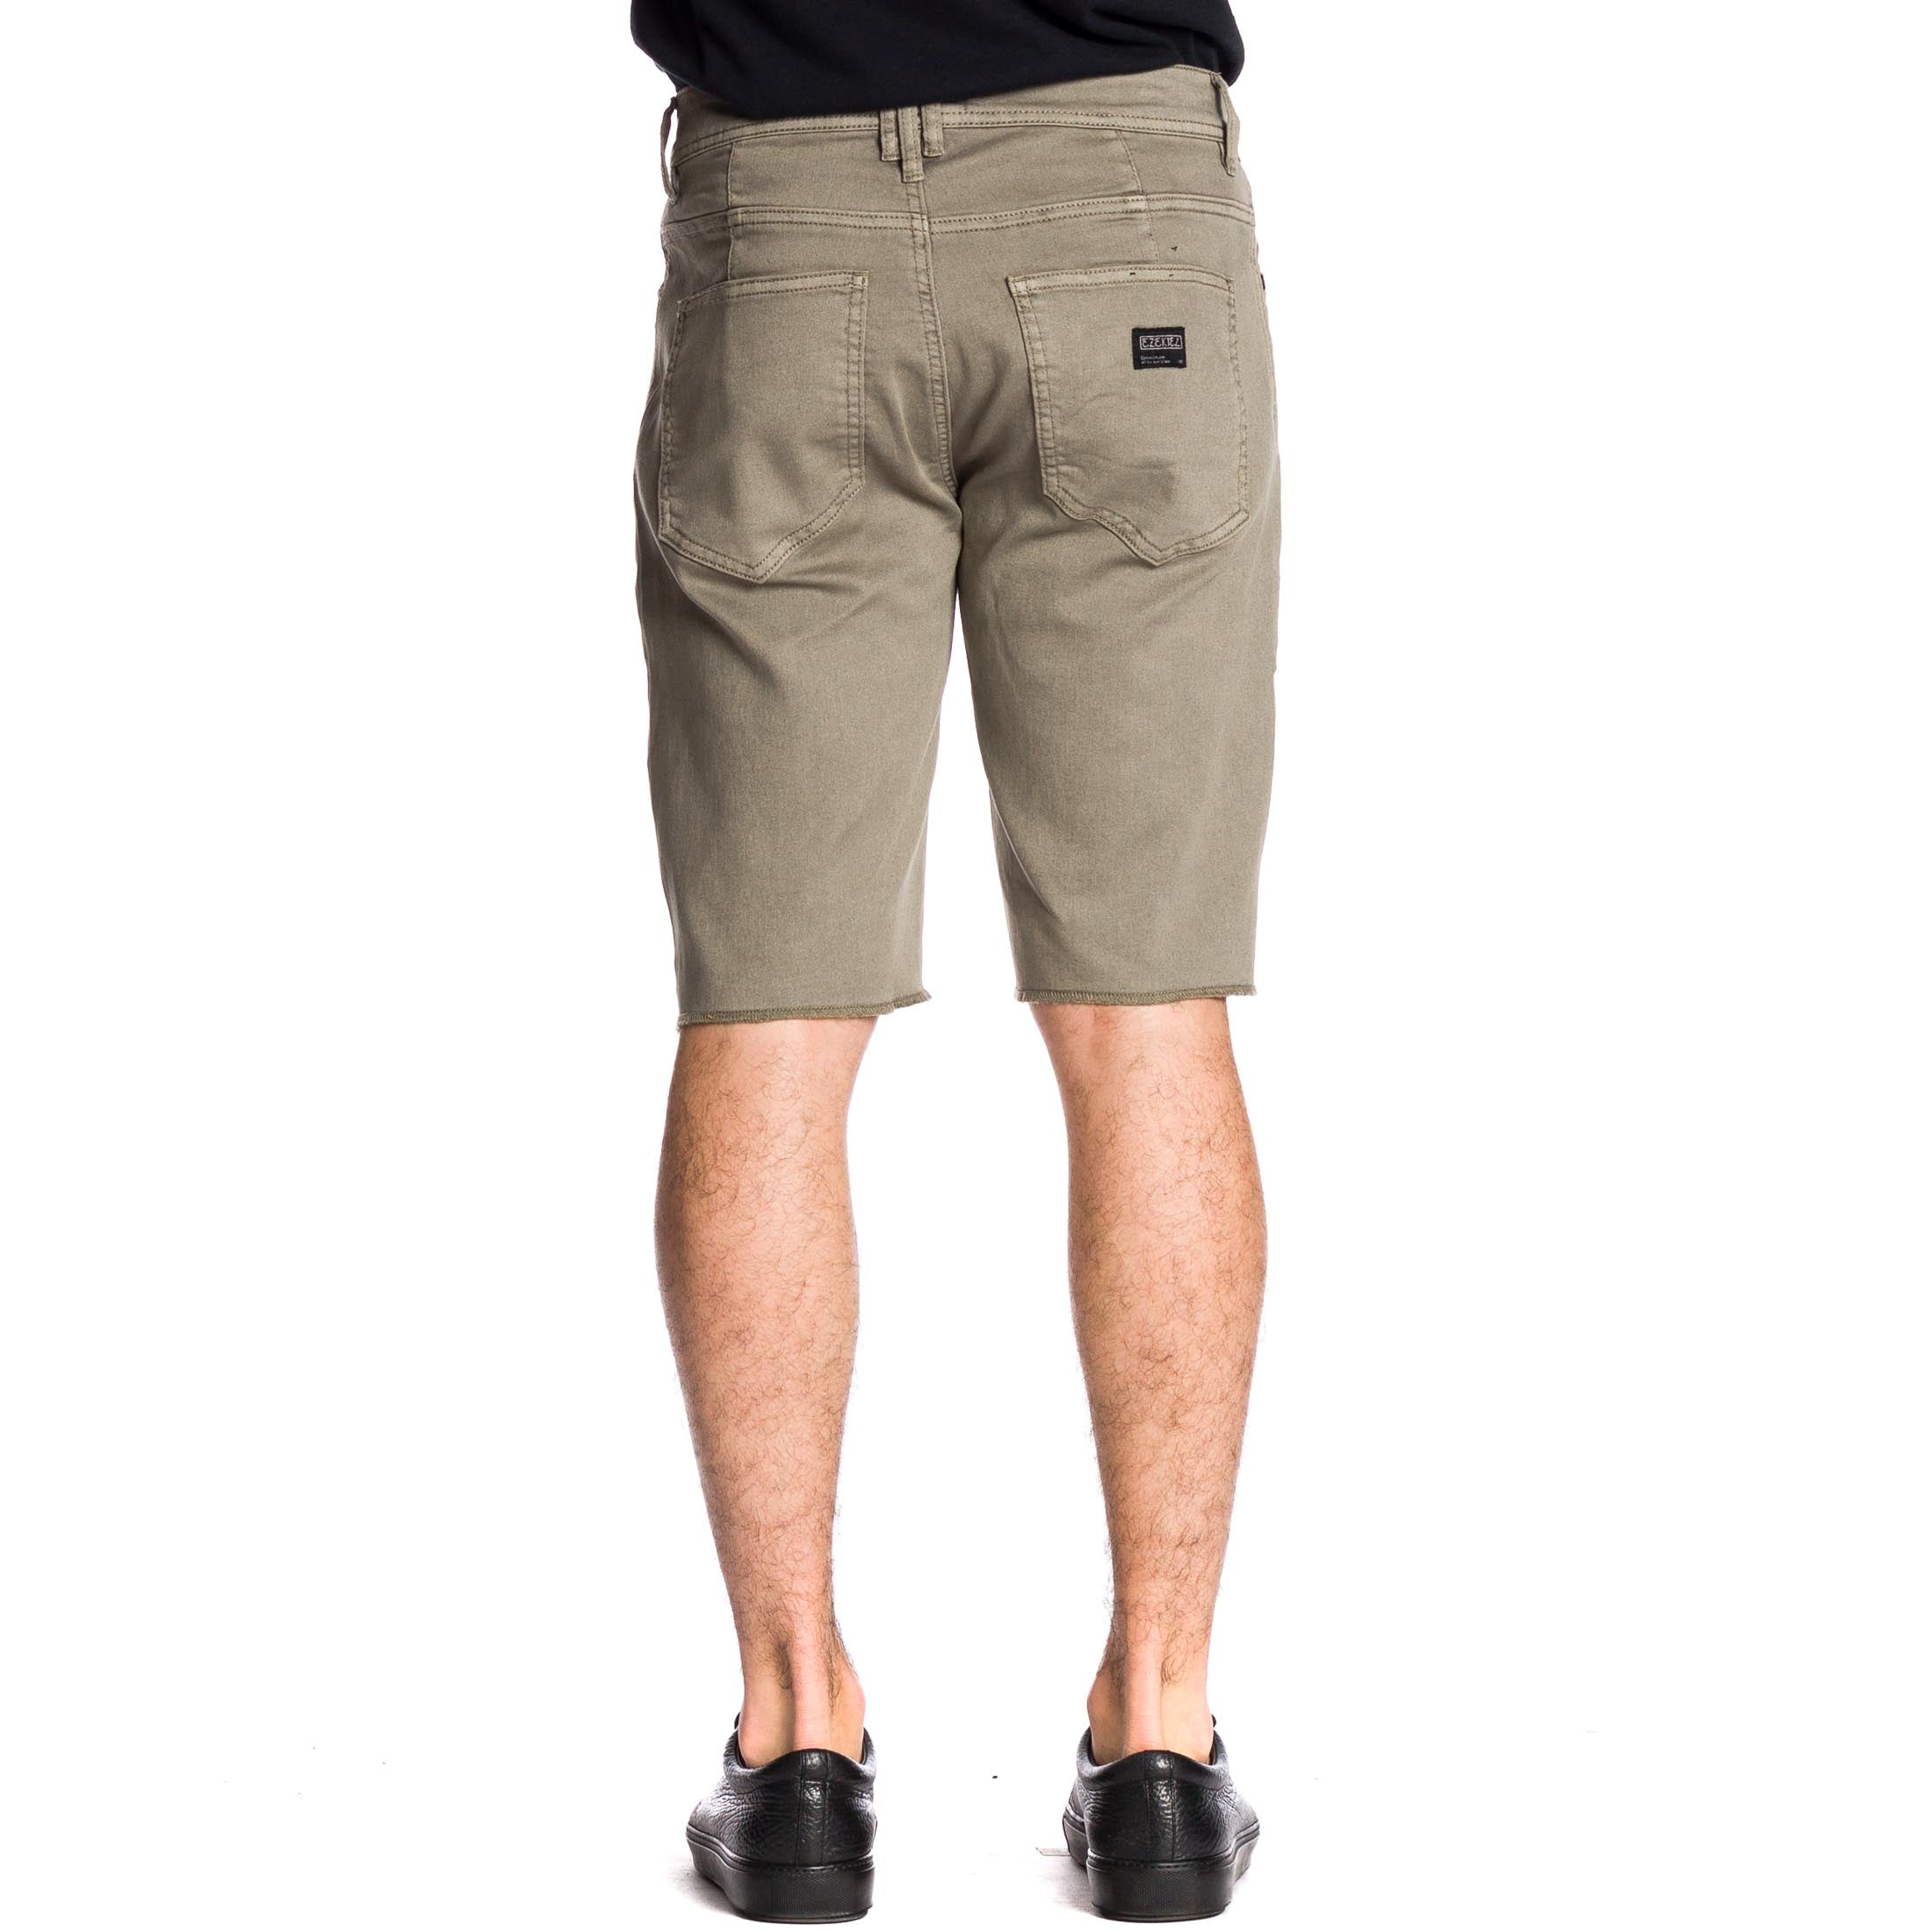 Now Denim Short - Dark Sienna - Ezekiel Clothing